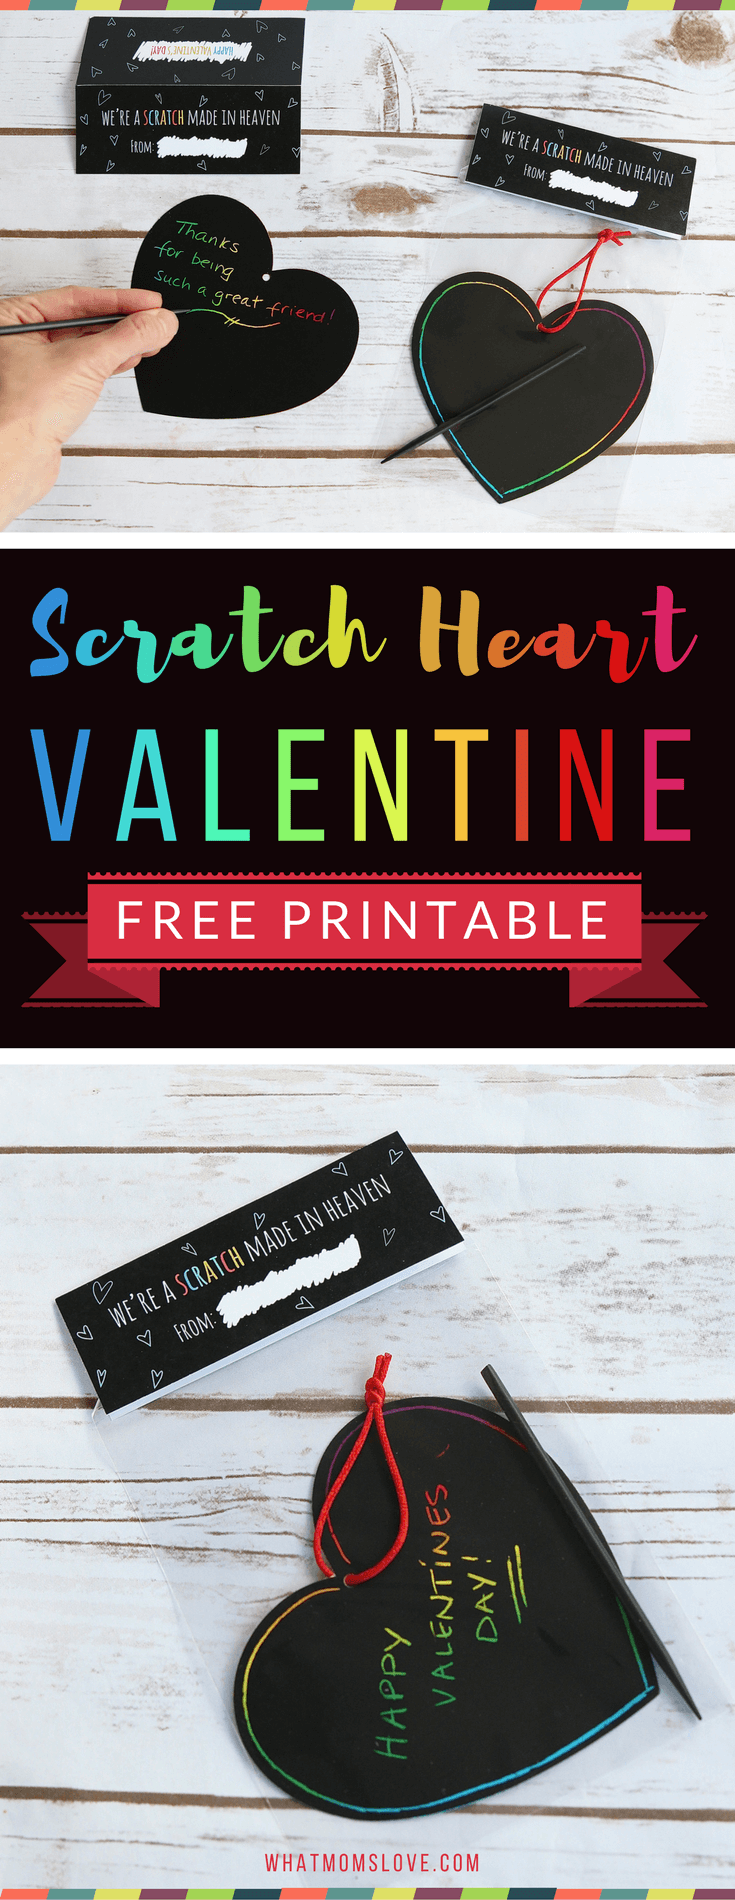 Free Printable Valentine for kids with a fun scratch heart! Such a fun idea for a non-candy Valentines card - perfect for your child's classroom Valentine's Day party!